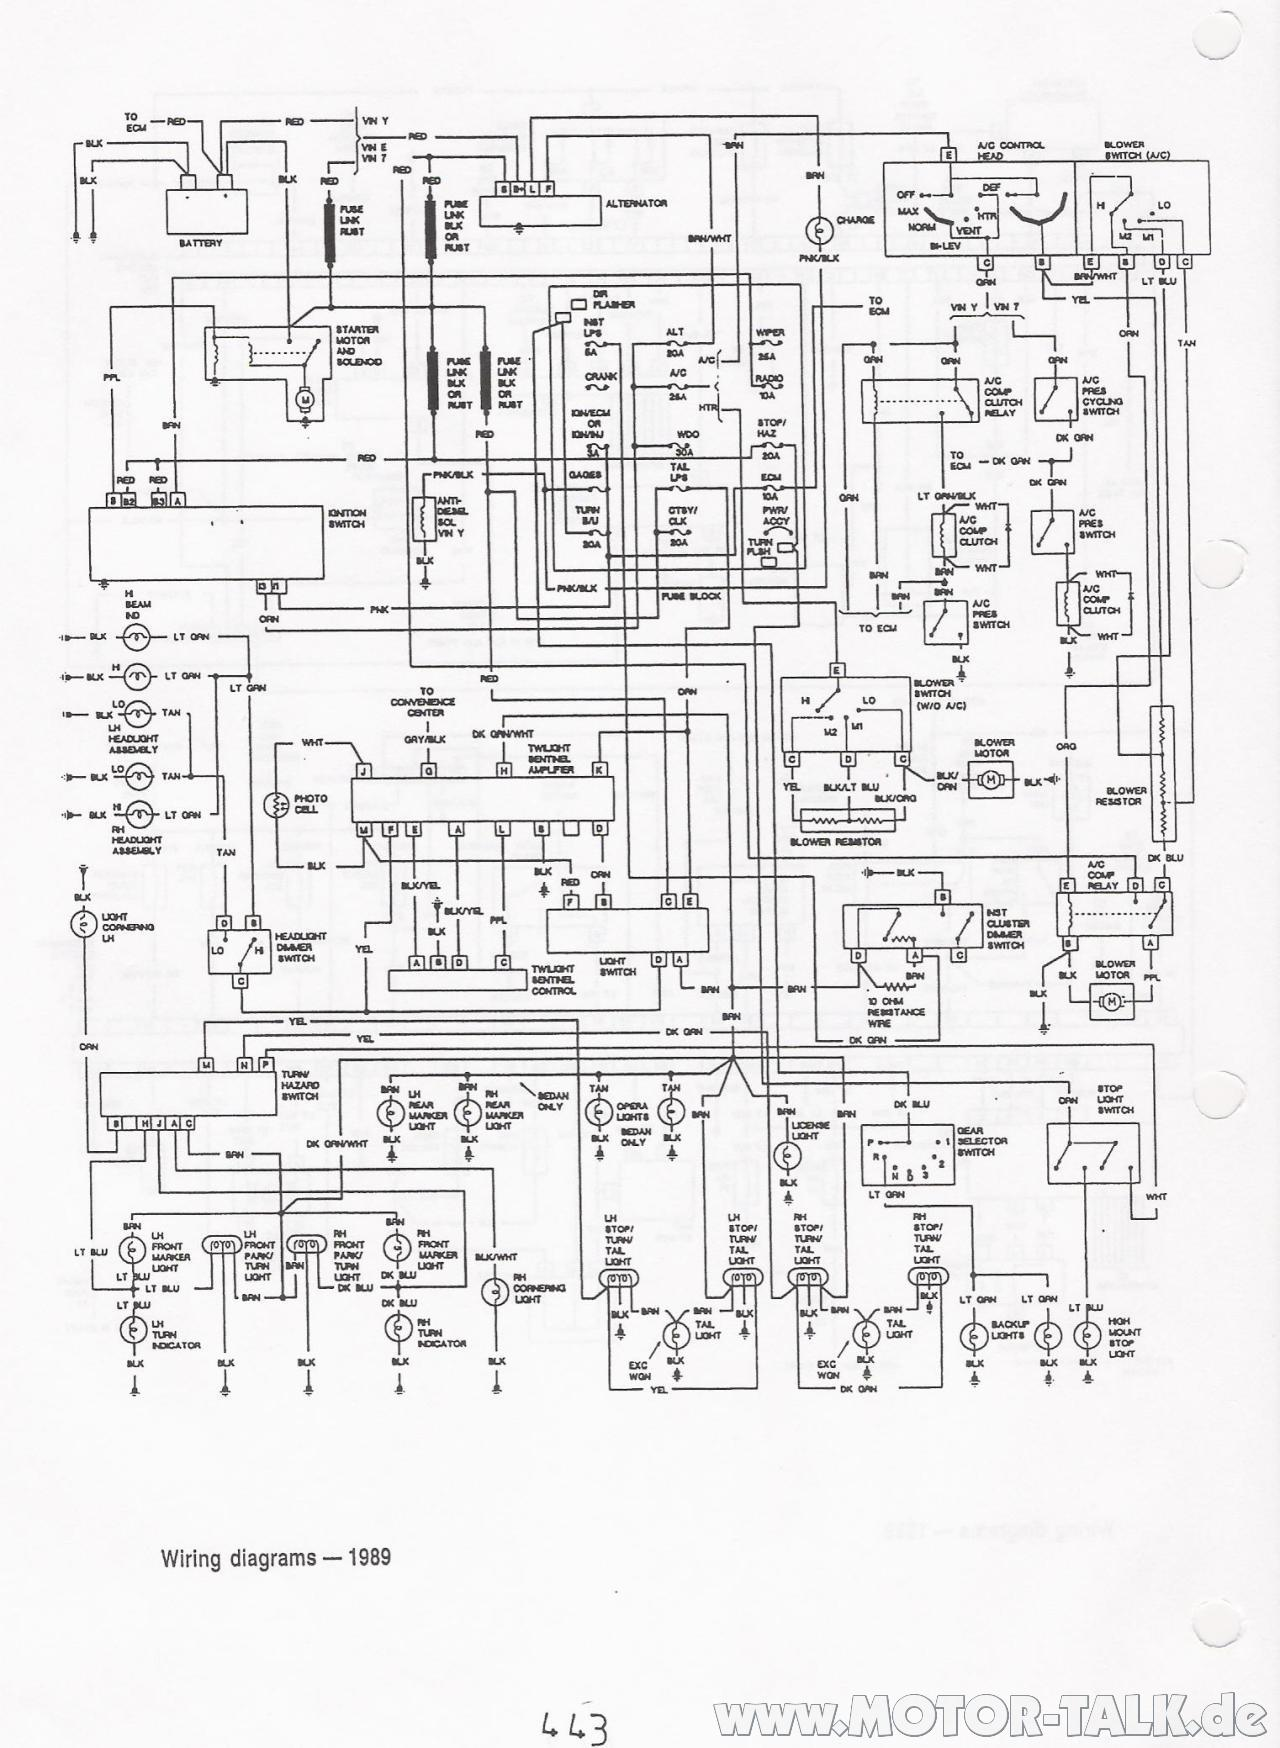 2012 chevy silverado stereo wiring diagram 1989 silverado wiring diagram, 1989, free engine image for ...